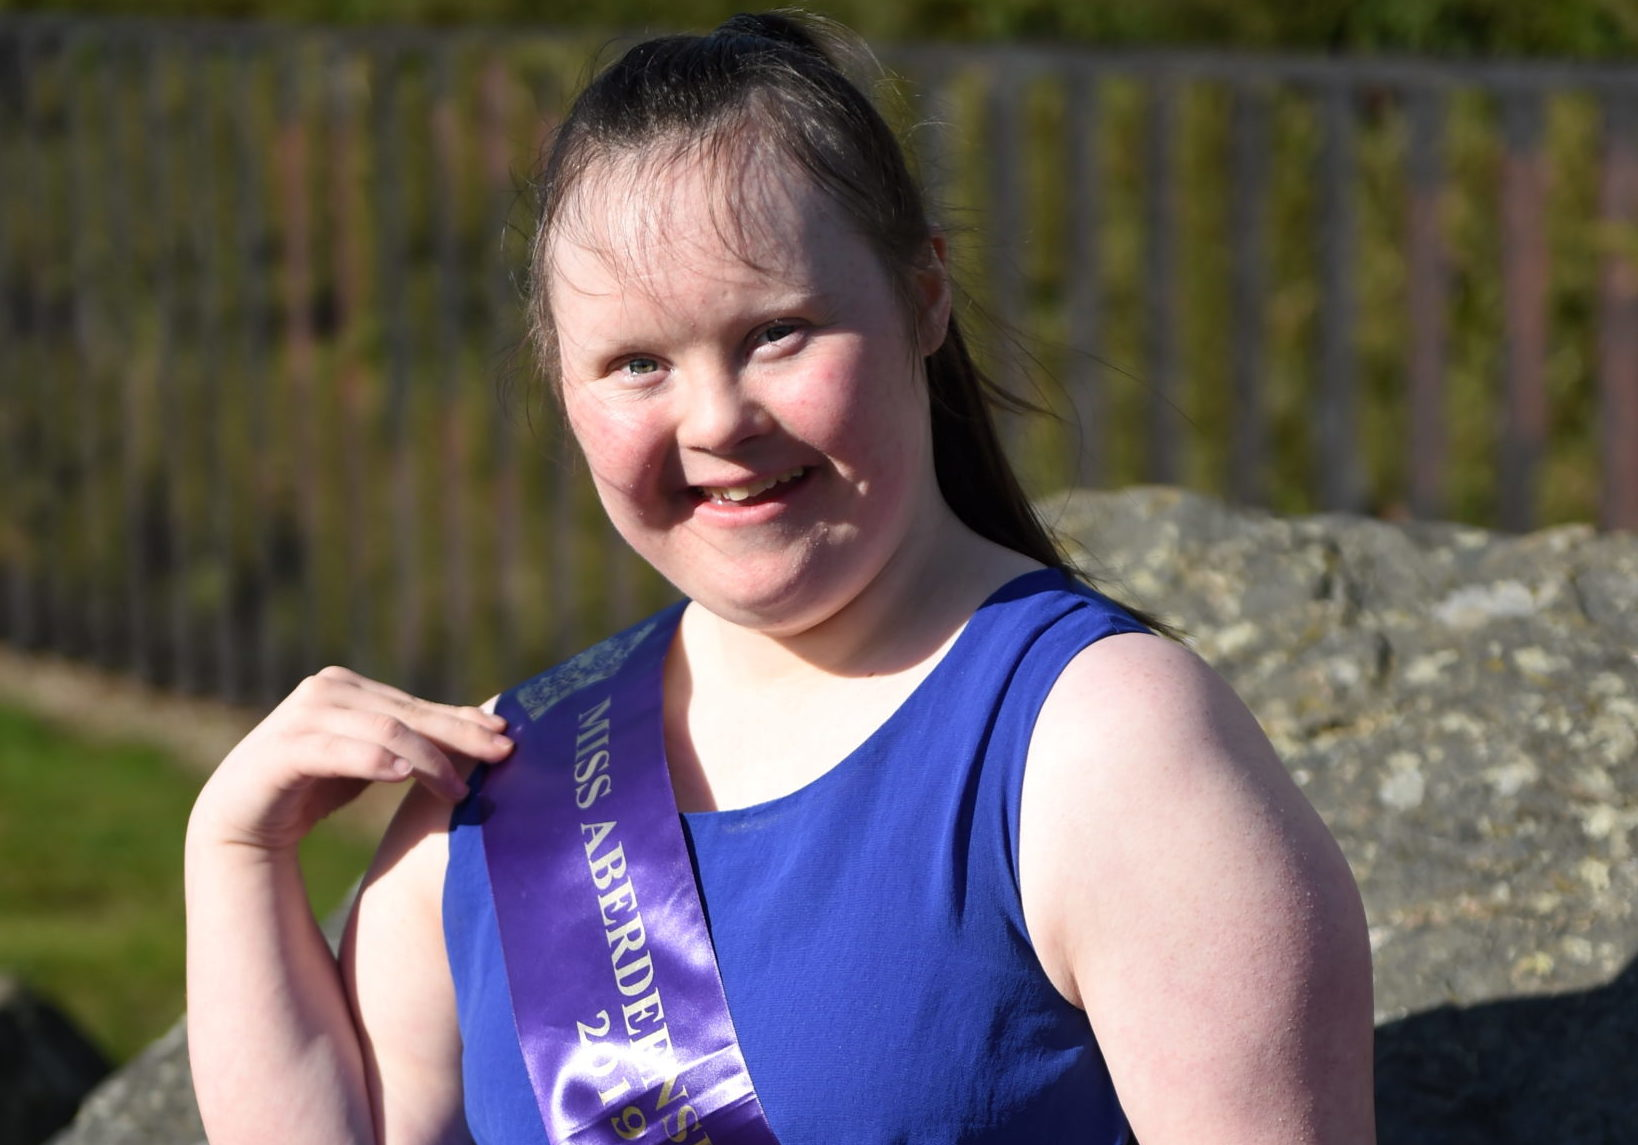 Taylor Clark, who has Down's Syndrome, has hopes she can claim the Miss Galaxy UK crown. Pictures by Paul Glendell.